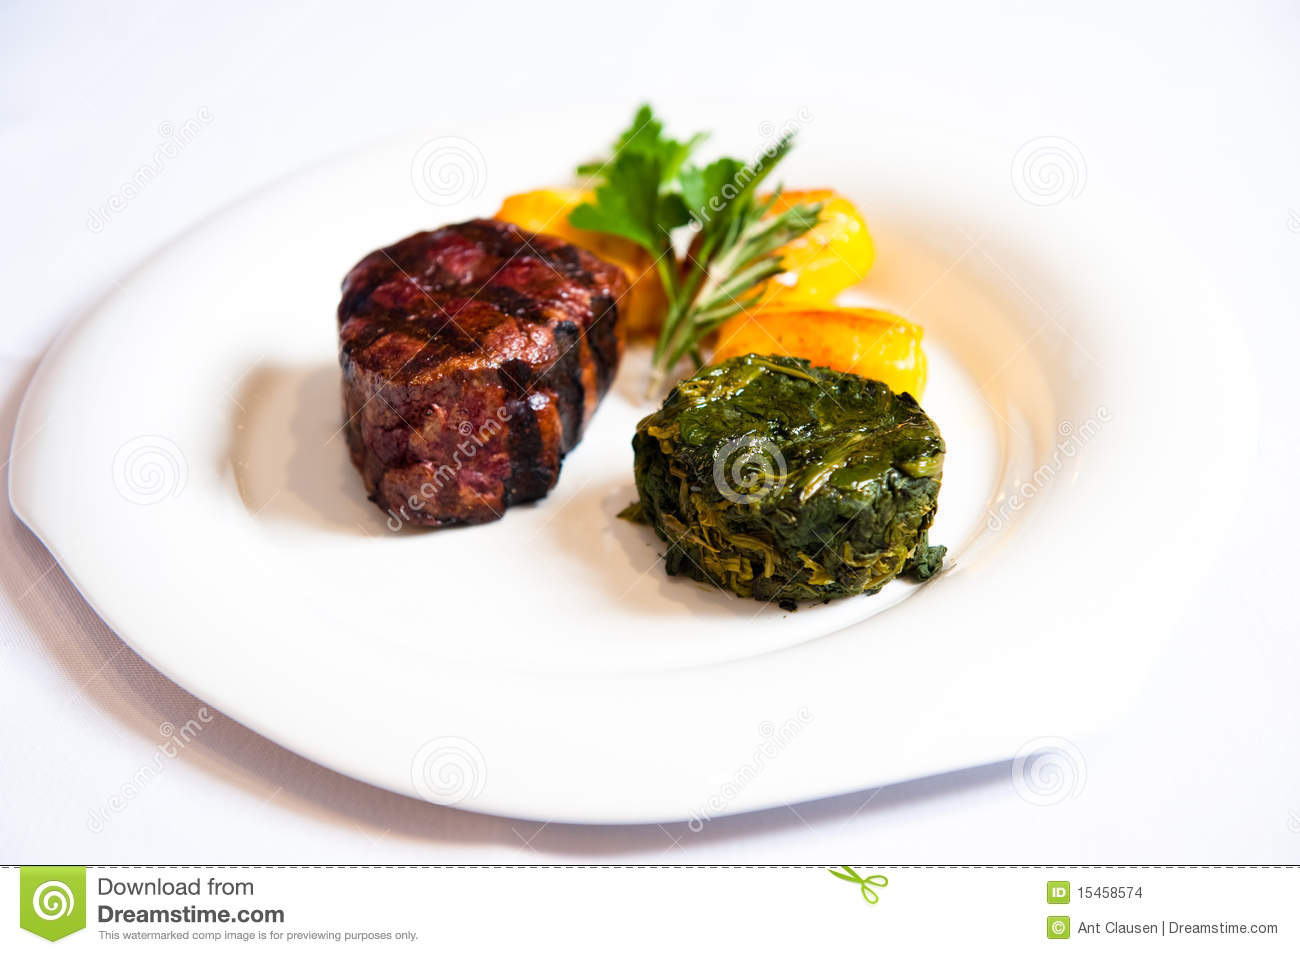 Main Course Beef With Spinach White Plate Stock Images  : main course beef spinach white plate 15458574 from www.dreamstime.com size 1300 x 955 jpeg 95kB